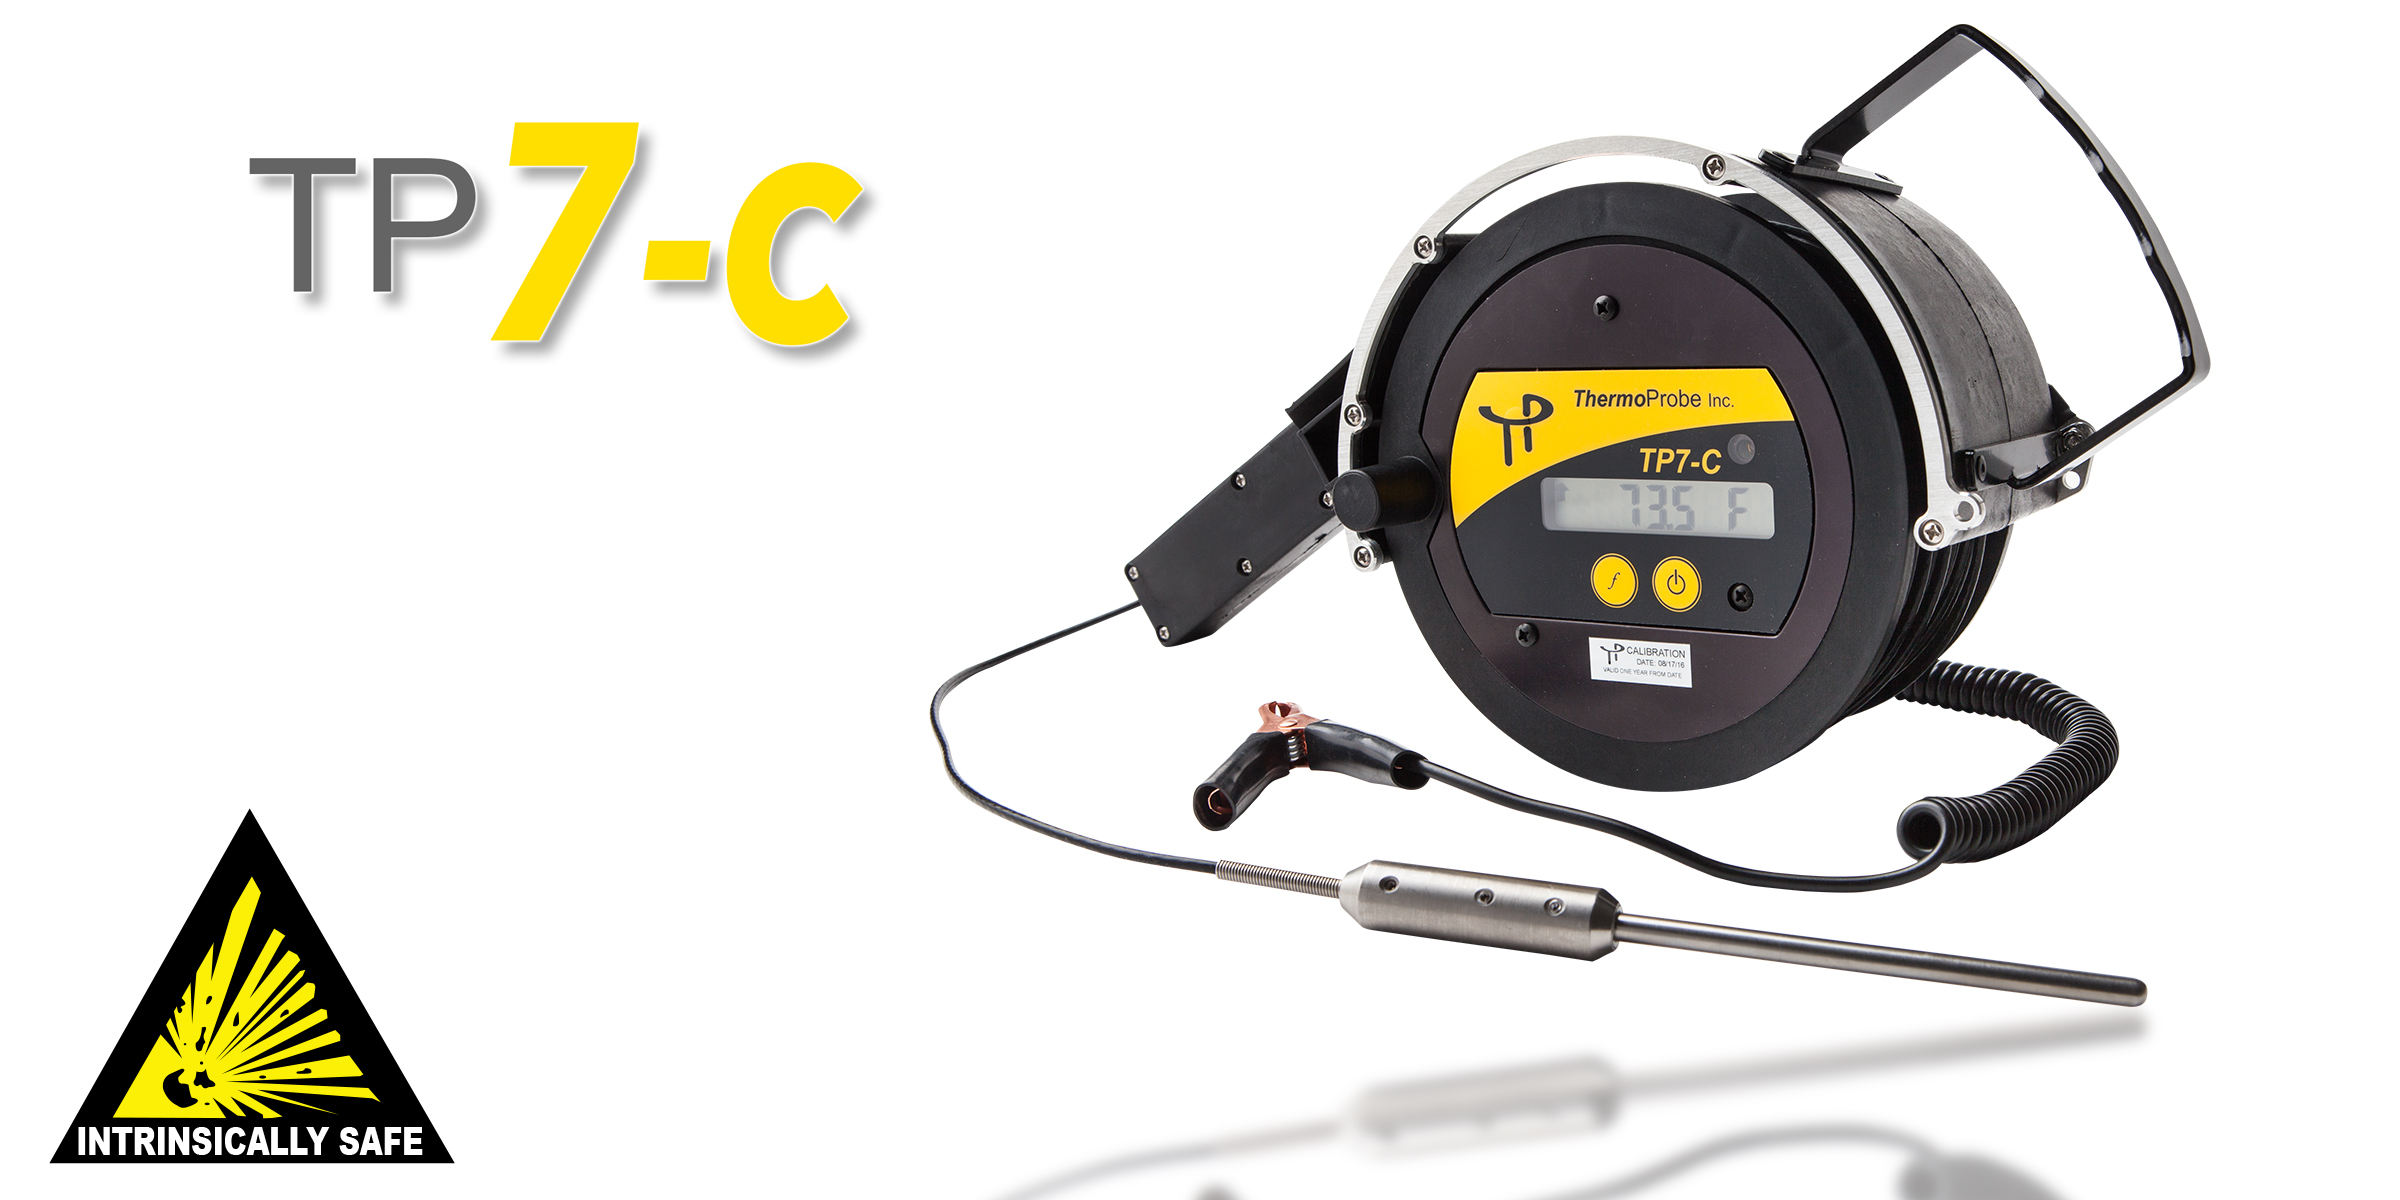 Features for the ThermoProbe TP7-C